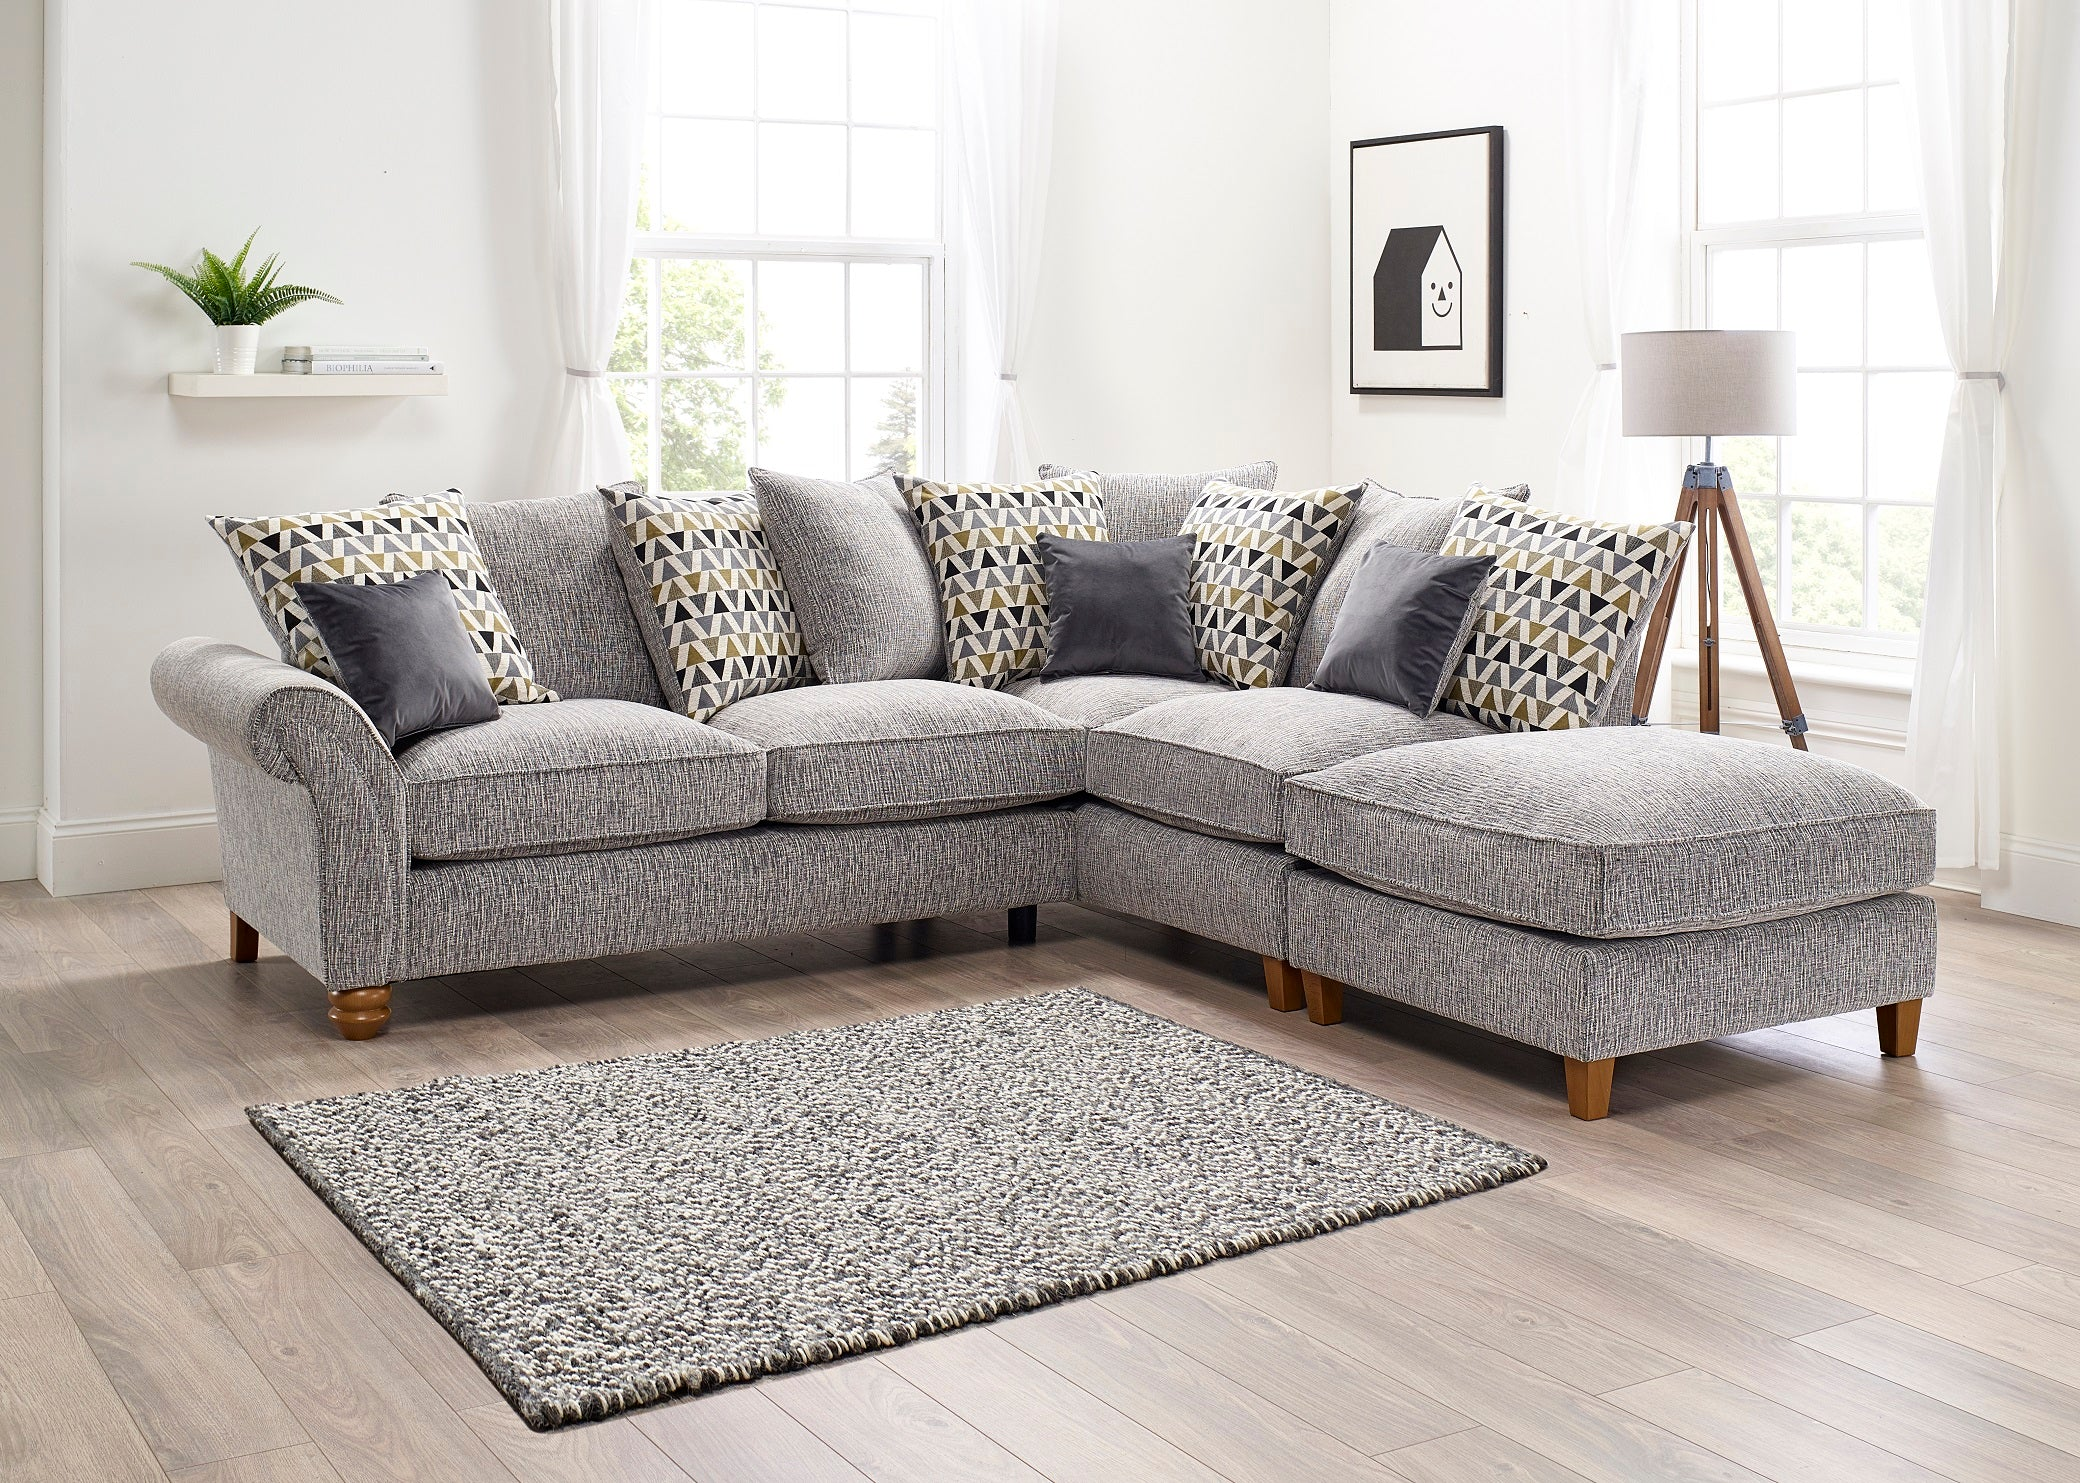 Vegas Silver Fabric Corner Sofa With Chaise Footstool Grey Brown Furniture For The Home